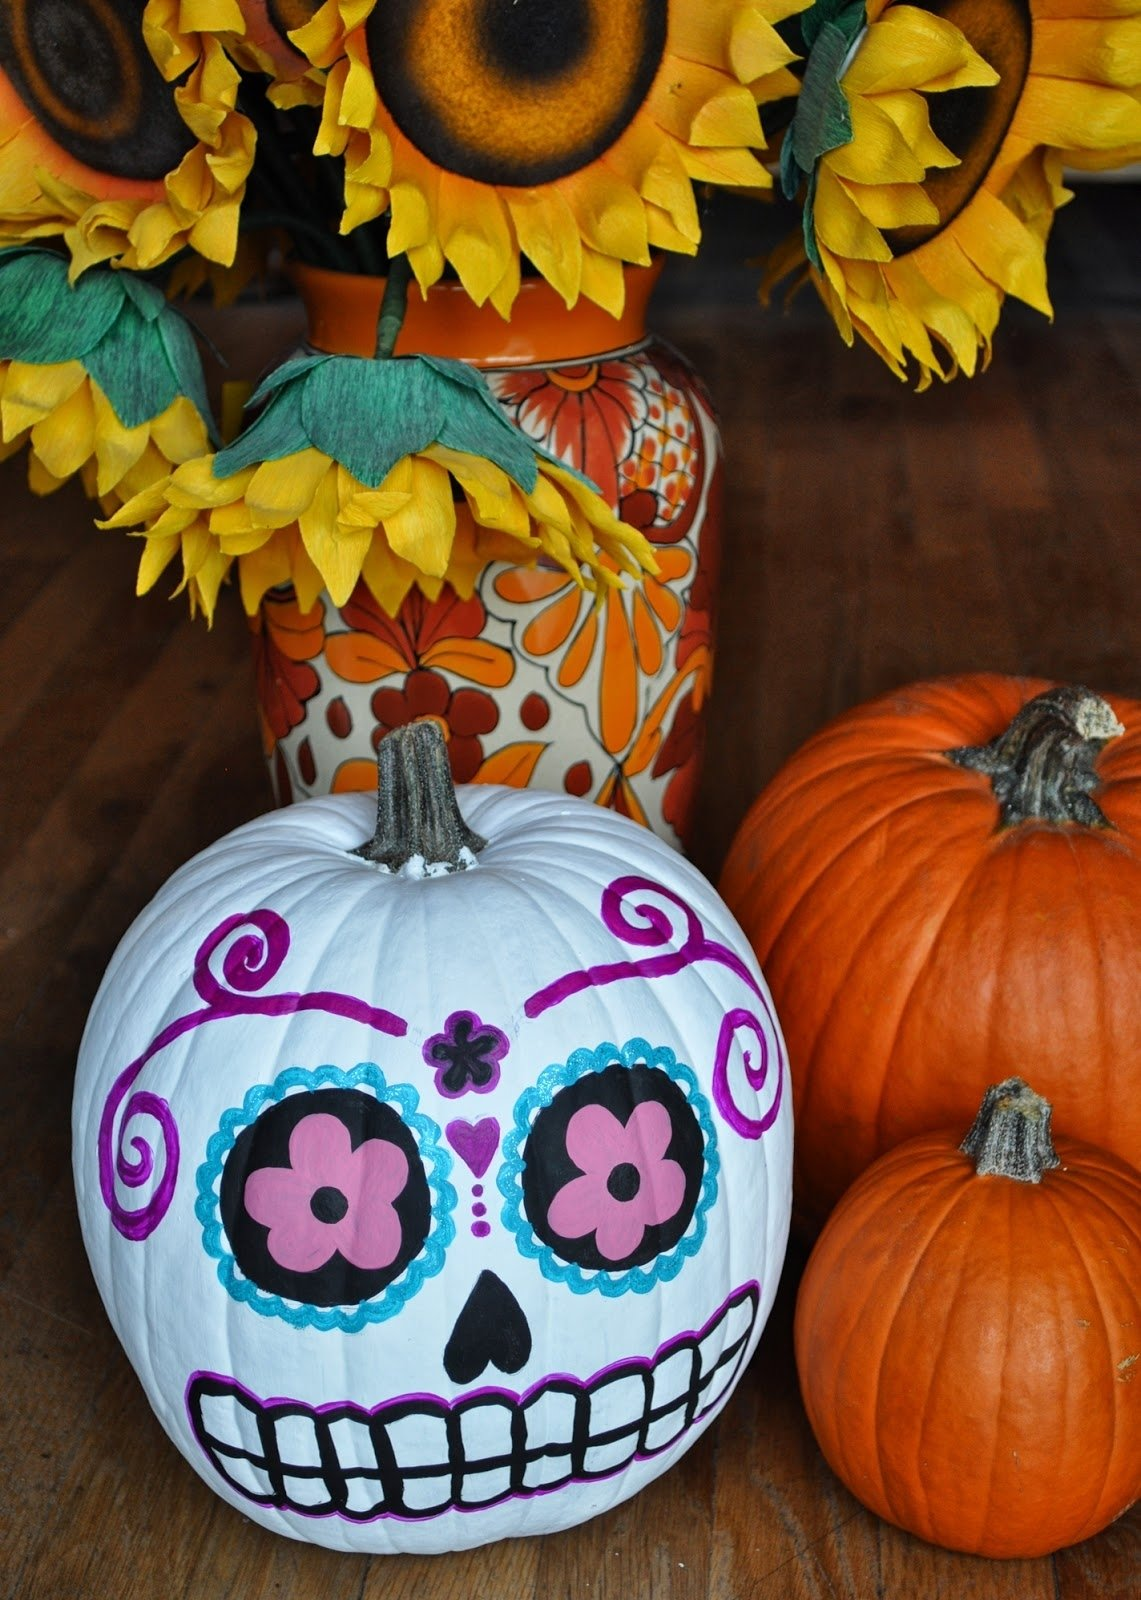 10 Most Recommended Non Carving Pumpkin Decorating Ideas 40 no carve pumpkin decorating ideas for kids 2020